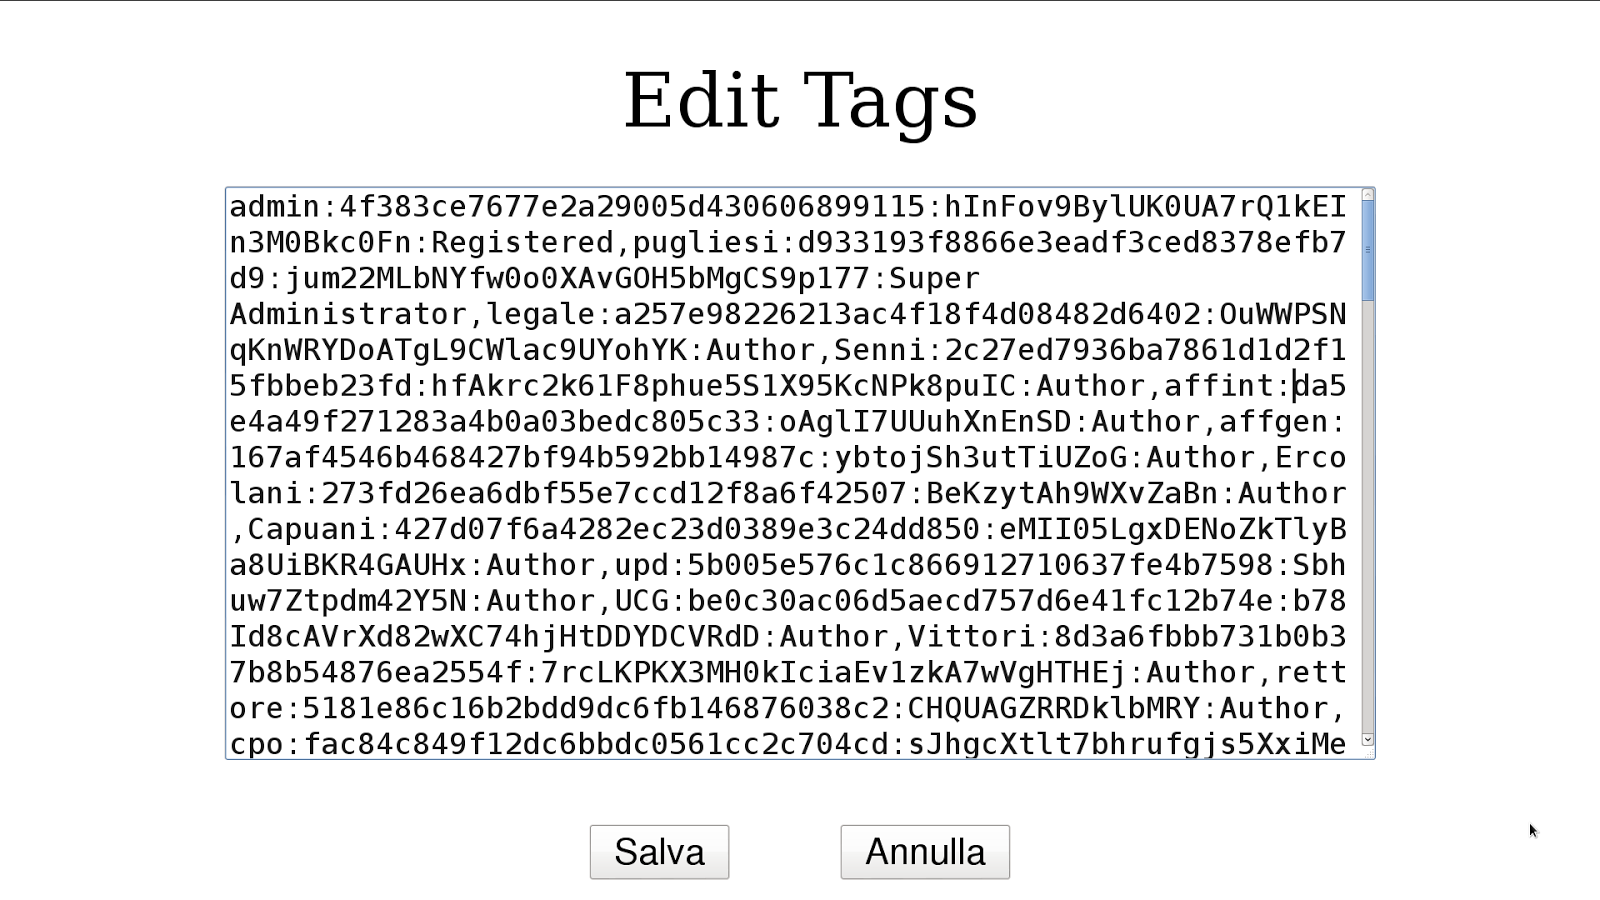 [X] com_tag (tag_id) Vulnerável a SQL-injection